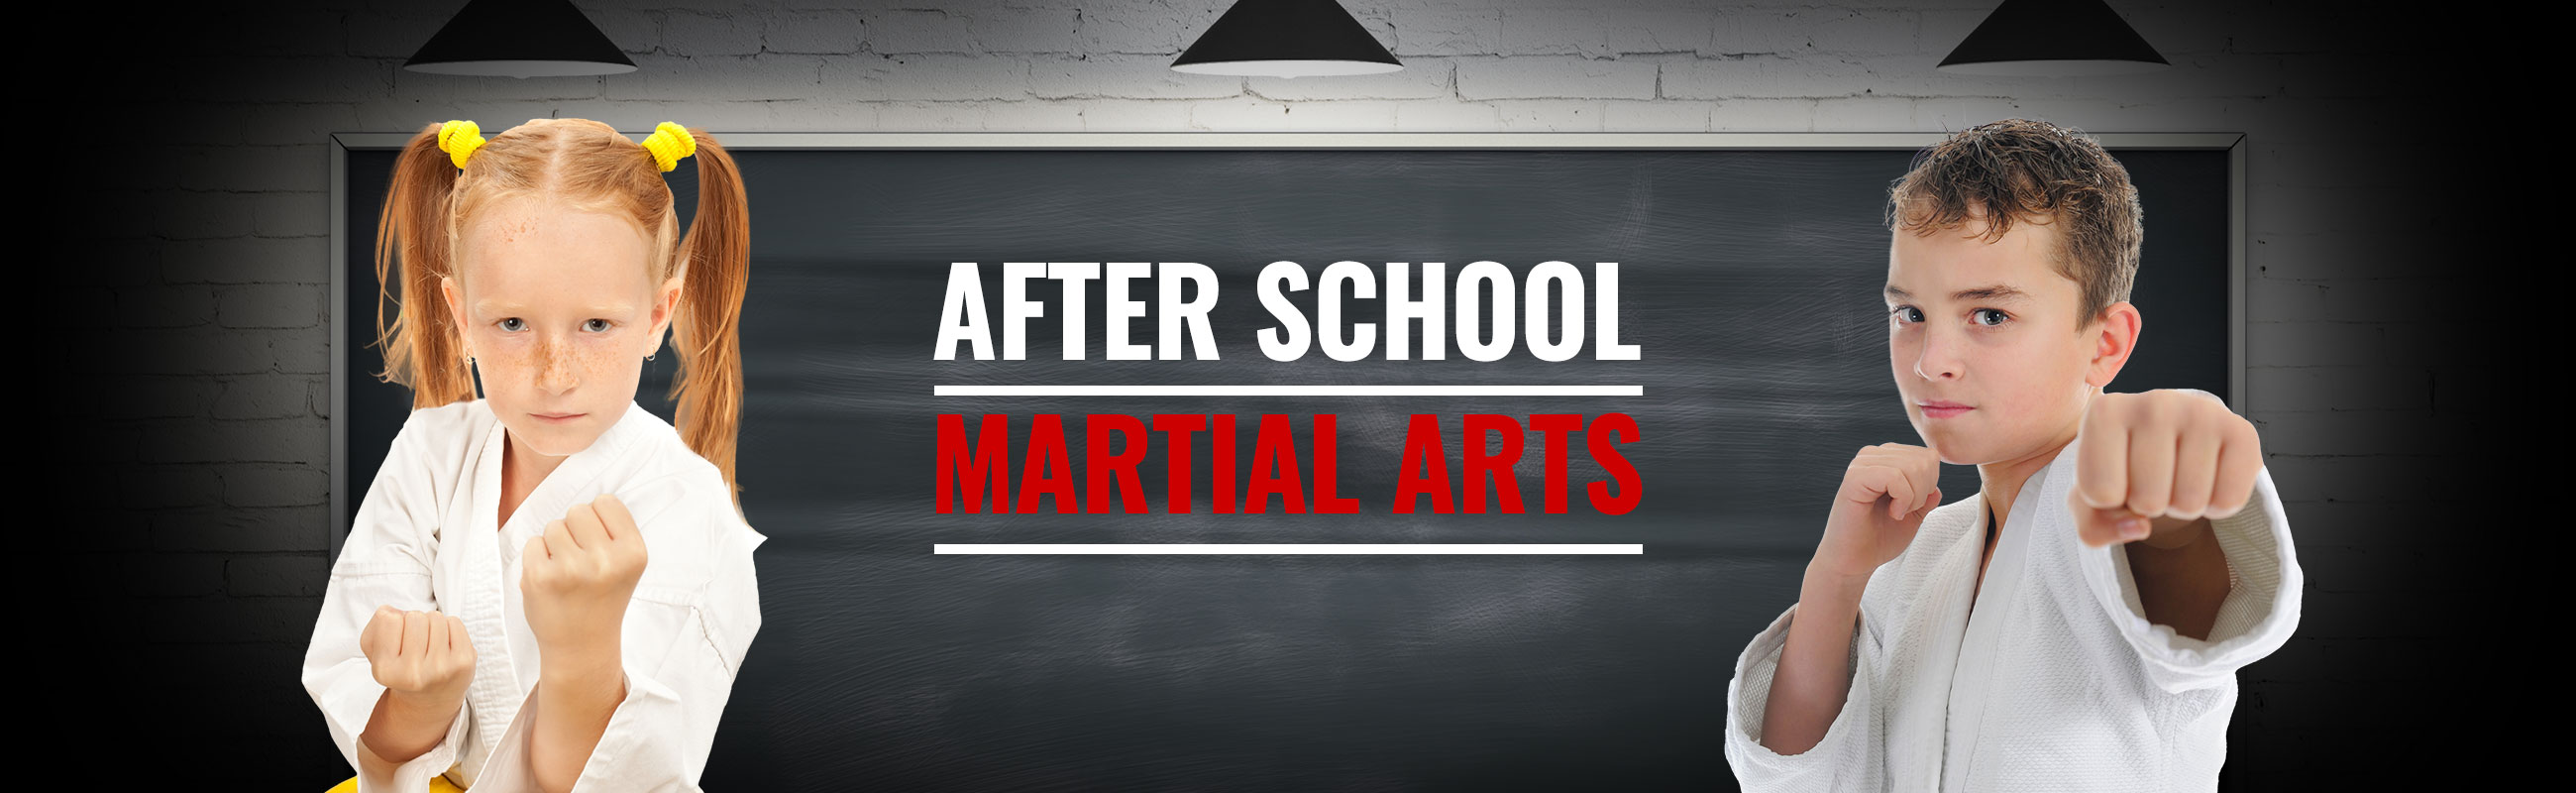 after school martial arts